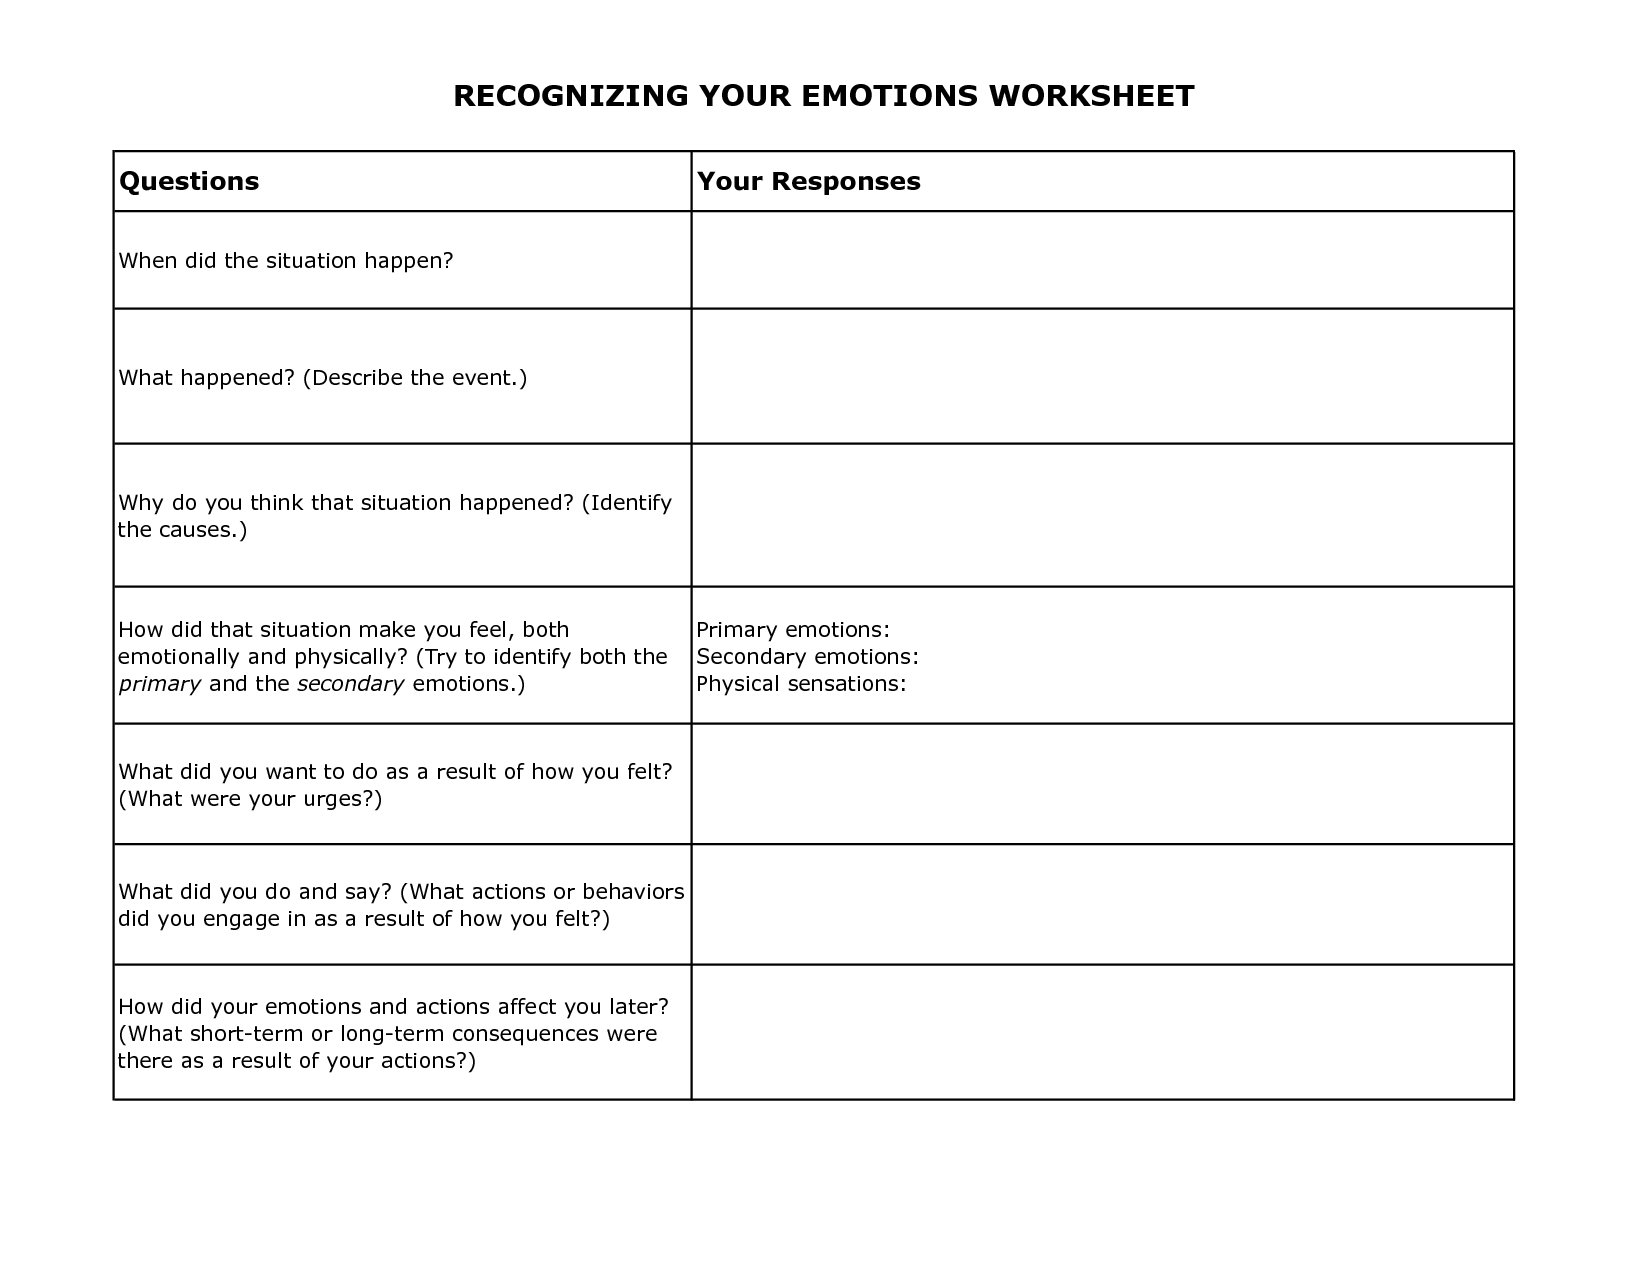 Free Printable Dbt Worksheets | Recognizing Your Emotions Worksheet - Free Printable Therapy Worksheets